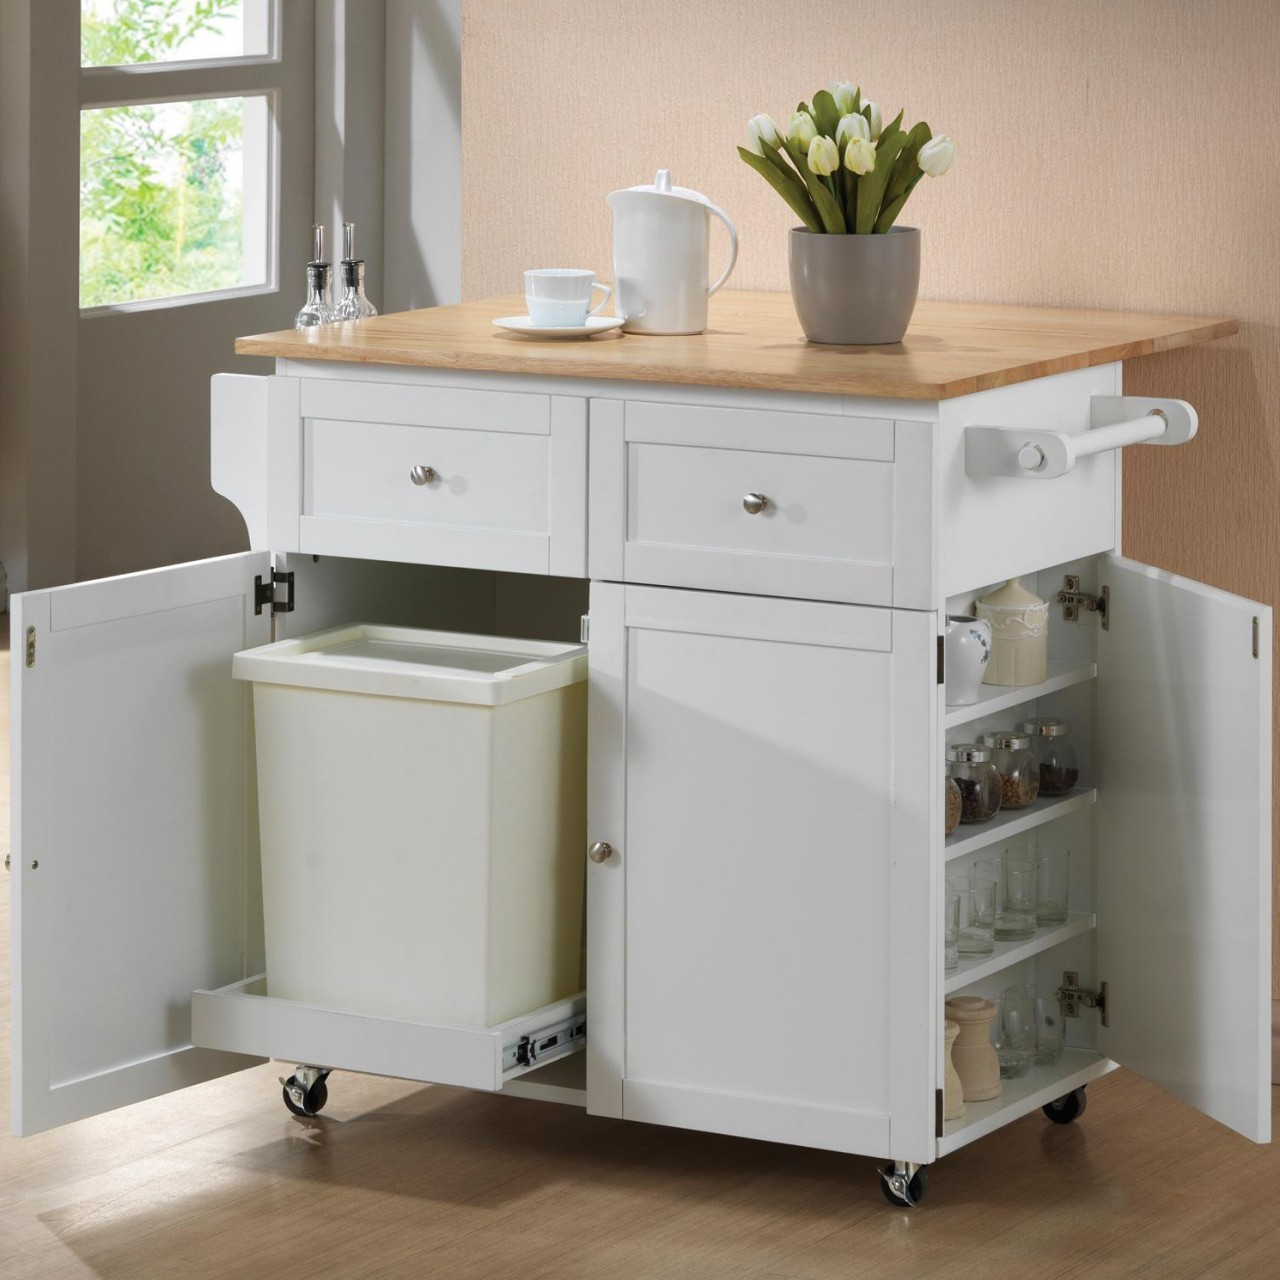 21 Impressive Cool Kitchen Island Design Ideas: White Kitchen Island Cart (6540